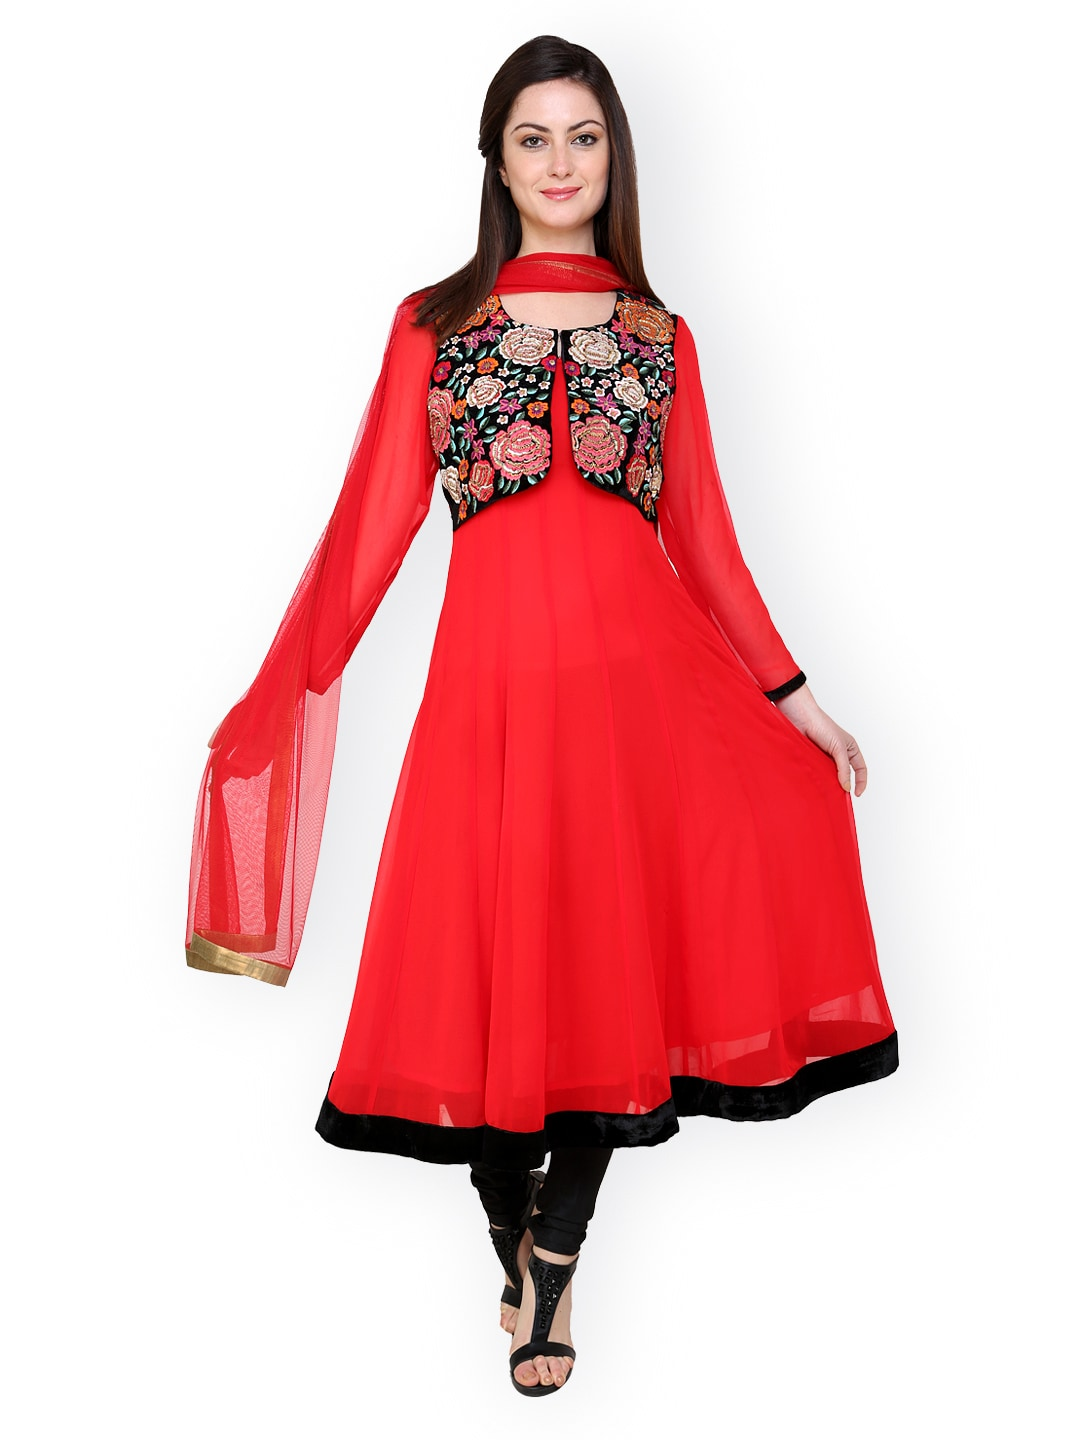 Red Vedikas Women Red Embroidered Churidar Kurta With Dupatta